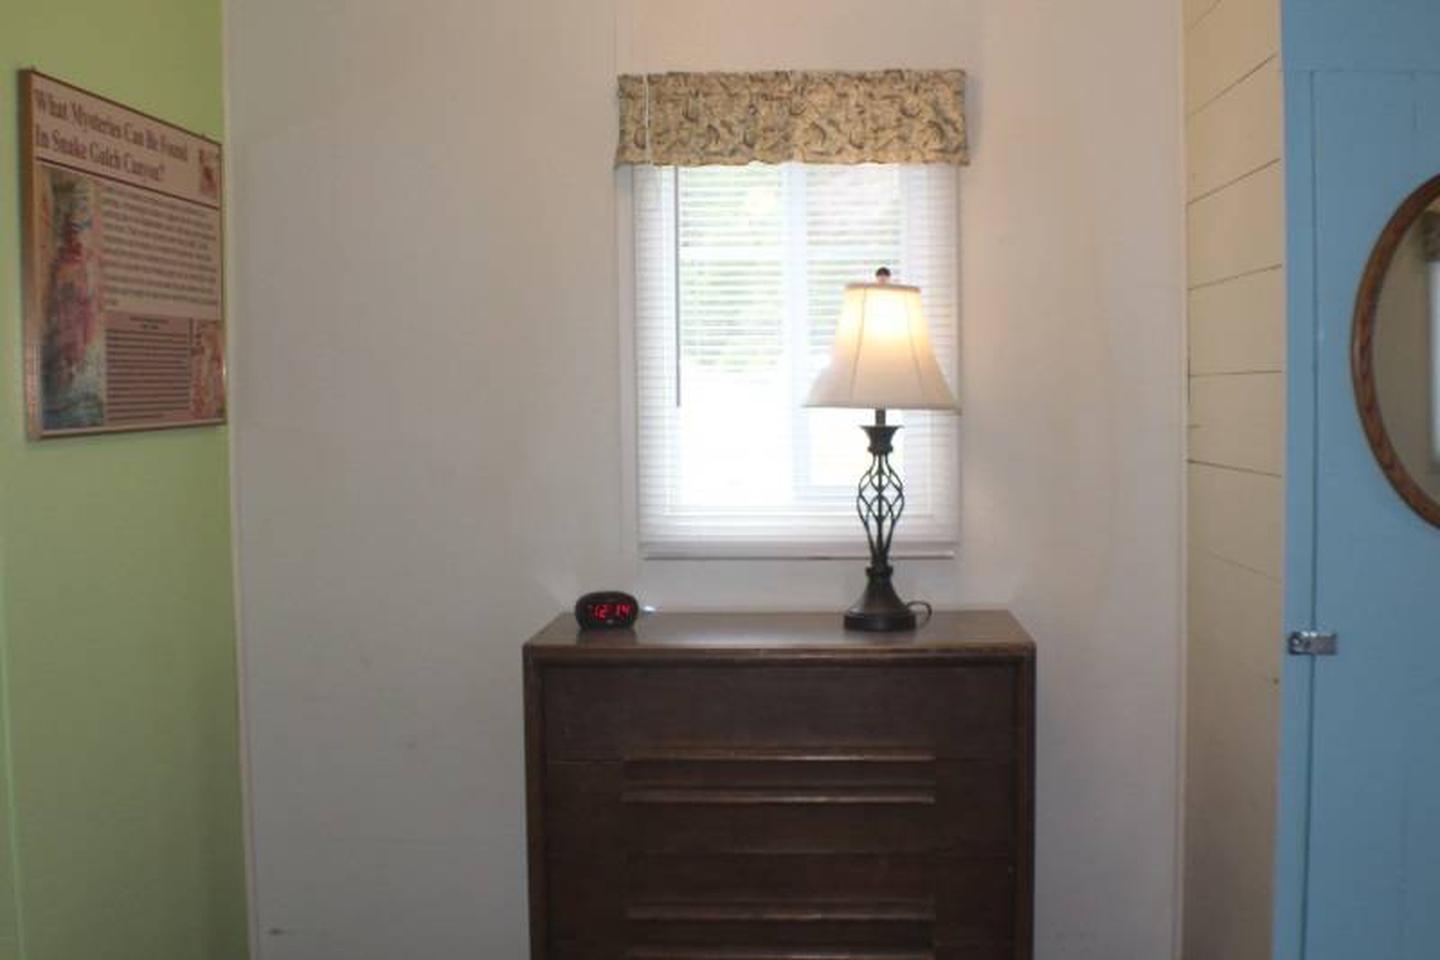 dresser, lampCabin 5: View to right of full bed. Dresser with lamp and alarm clock with USB charging port.